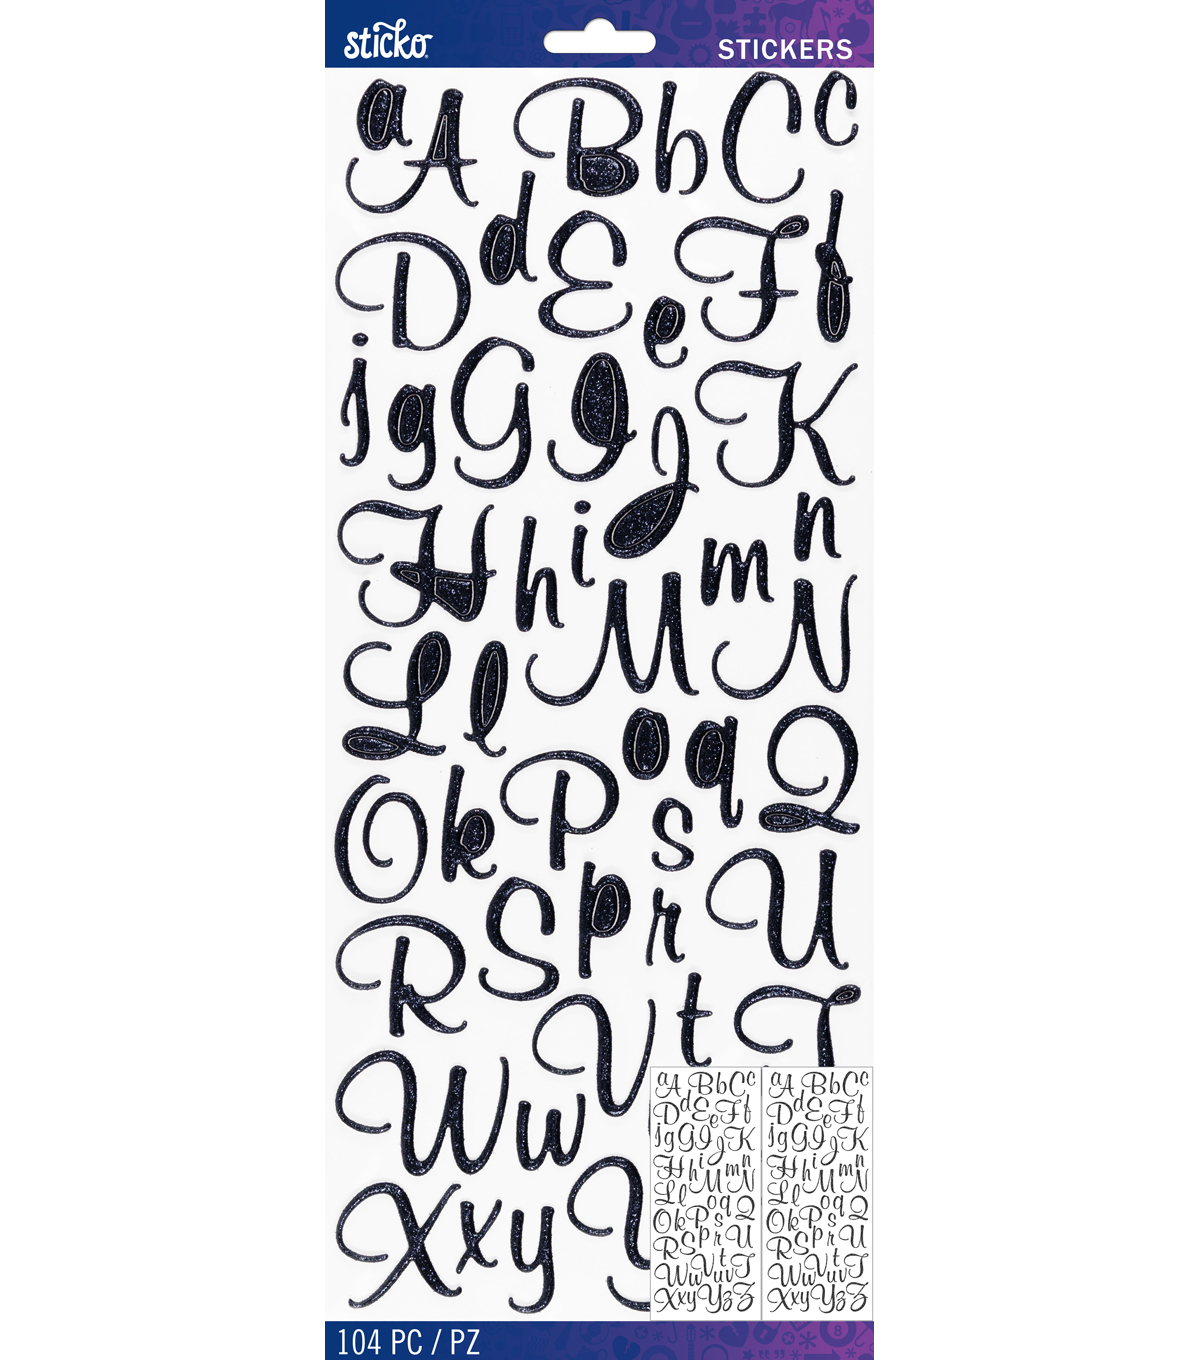 Sticko® Mural Script Dimensional Glitter Alphabet Stickers-Black